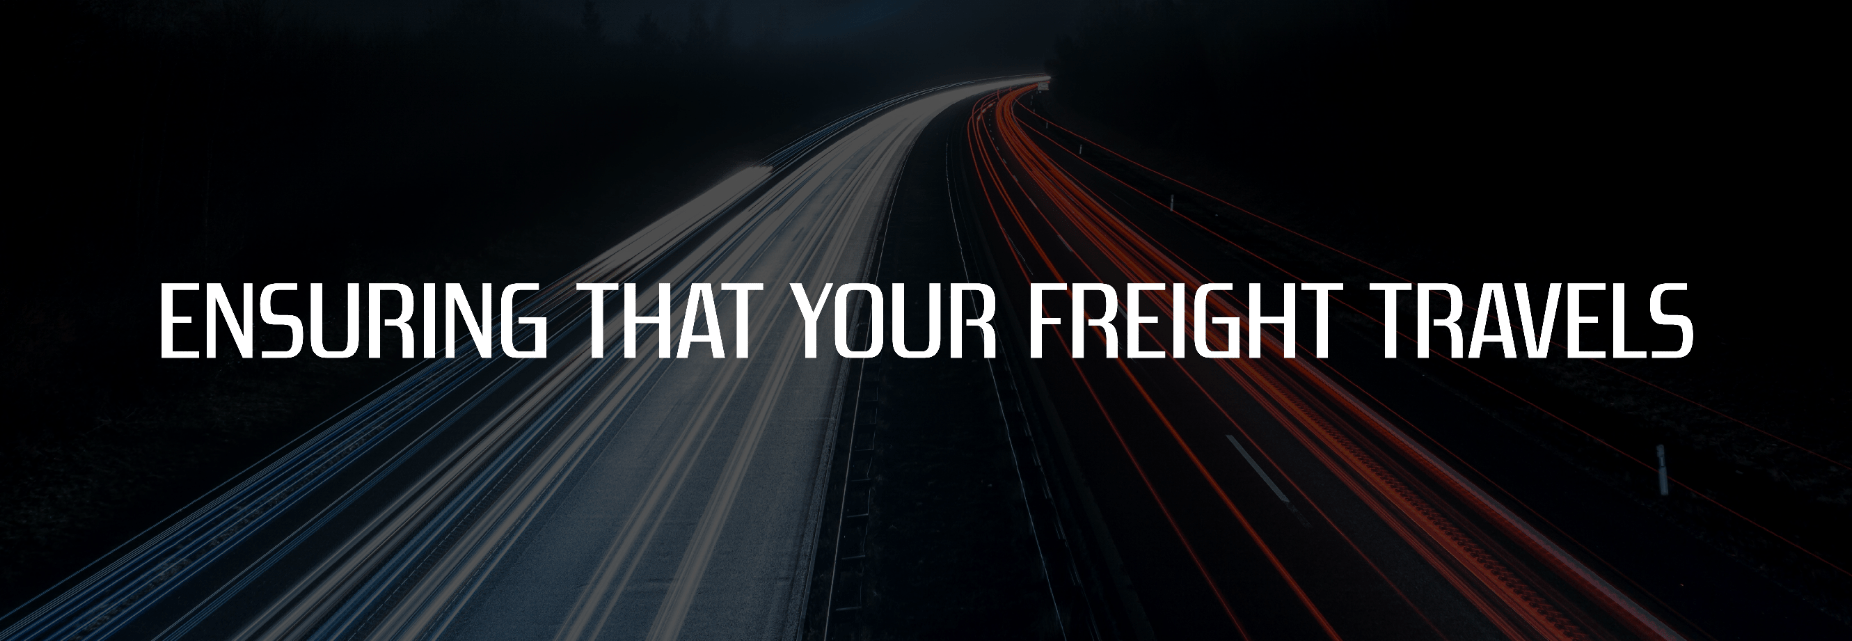 Ensuring that your freight travels